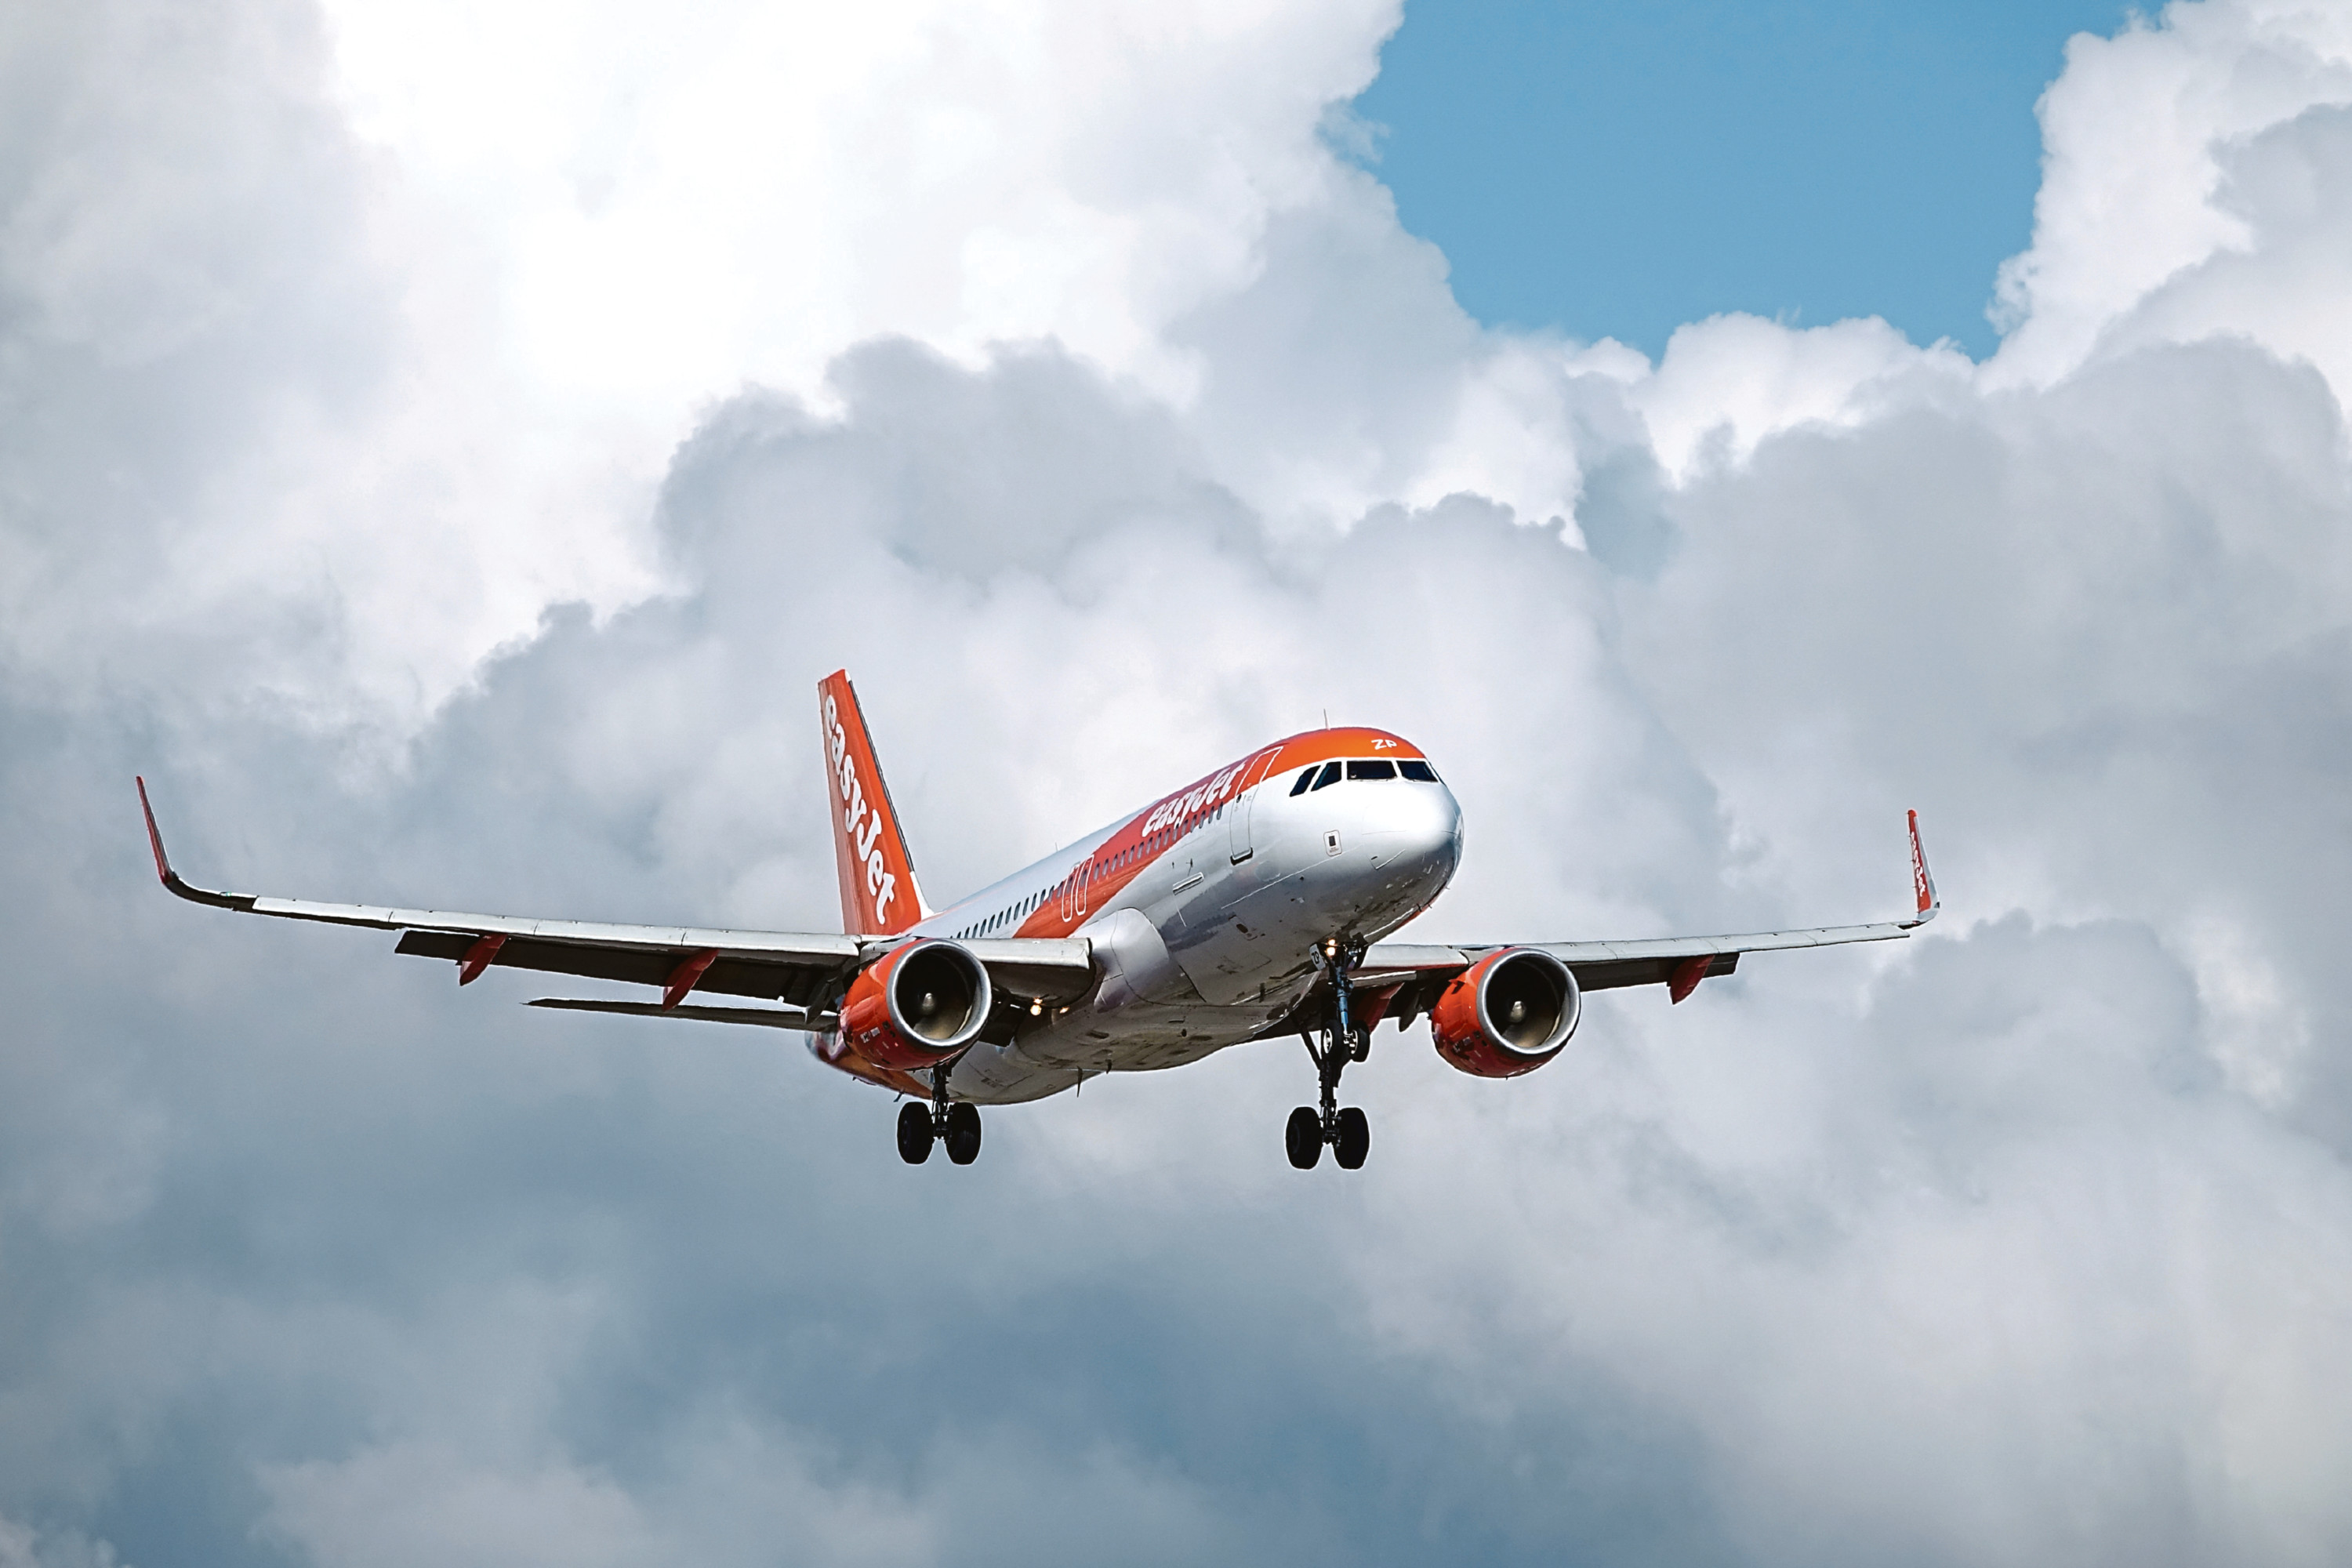 EasyJet said it had dropped the route due to a lack of demand.